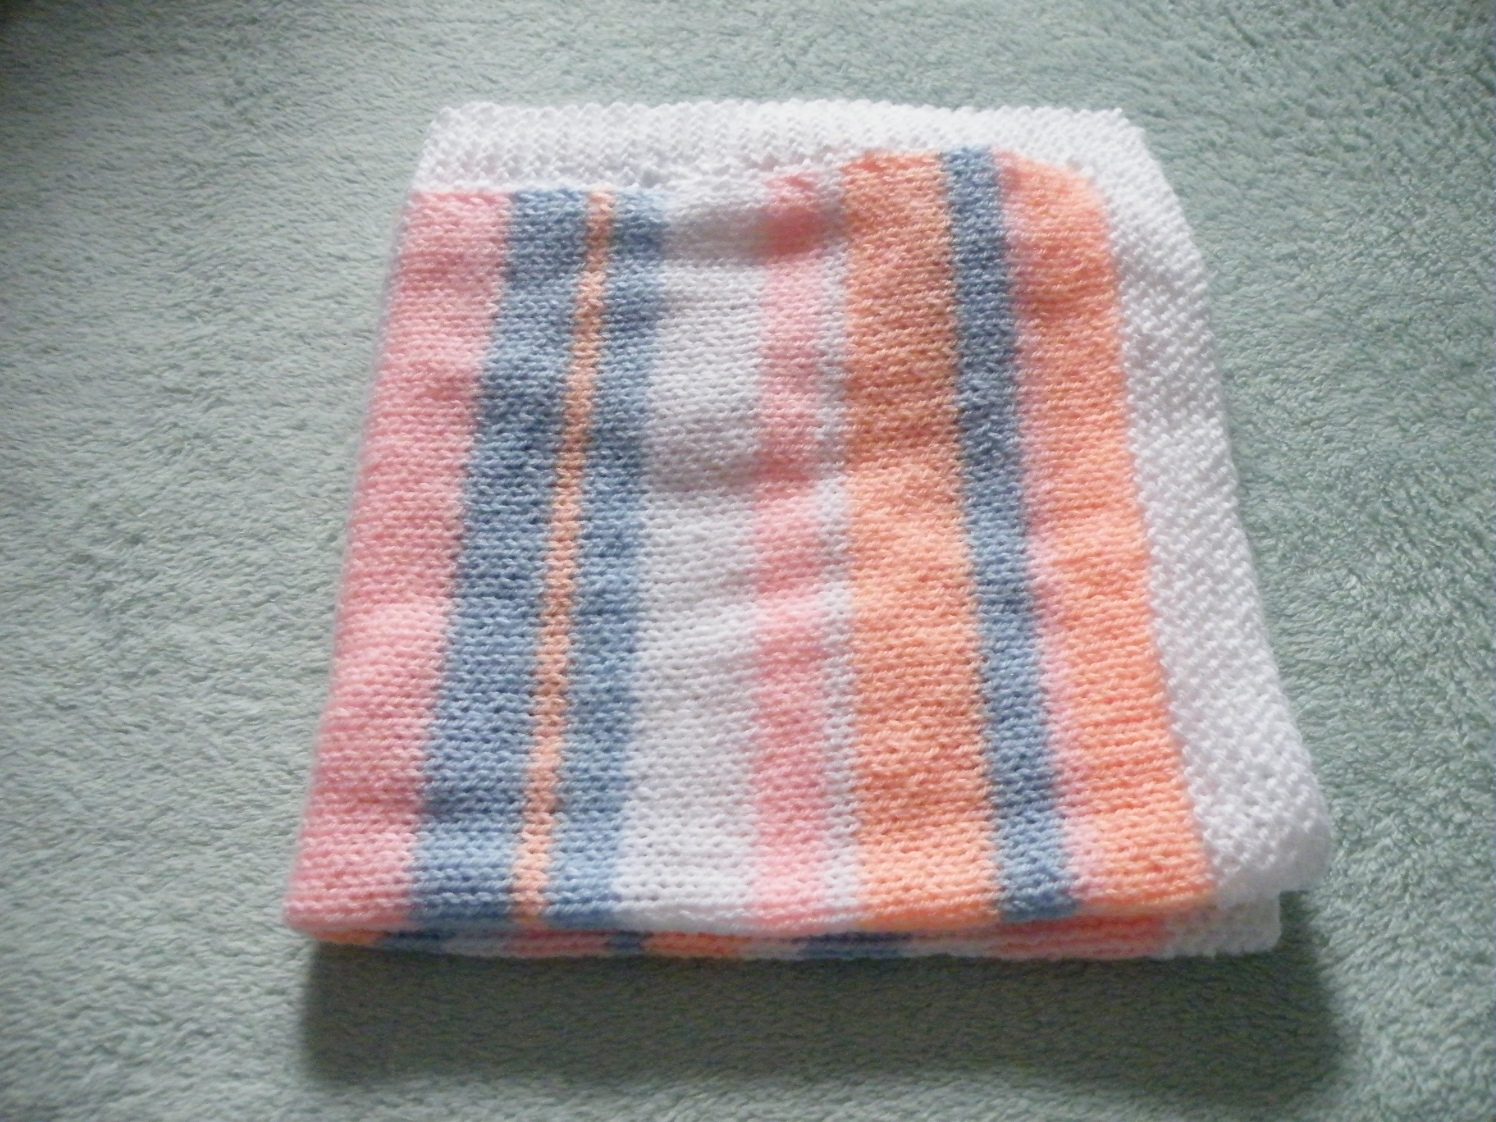 Knitting Patterns For Dogs Blankets : A knitted dog blanket, and a sort-of pattern PaperPuff